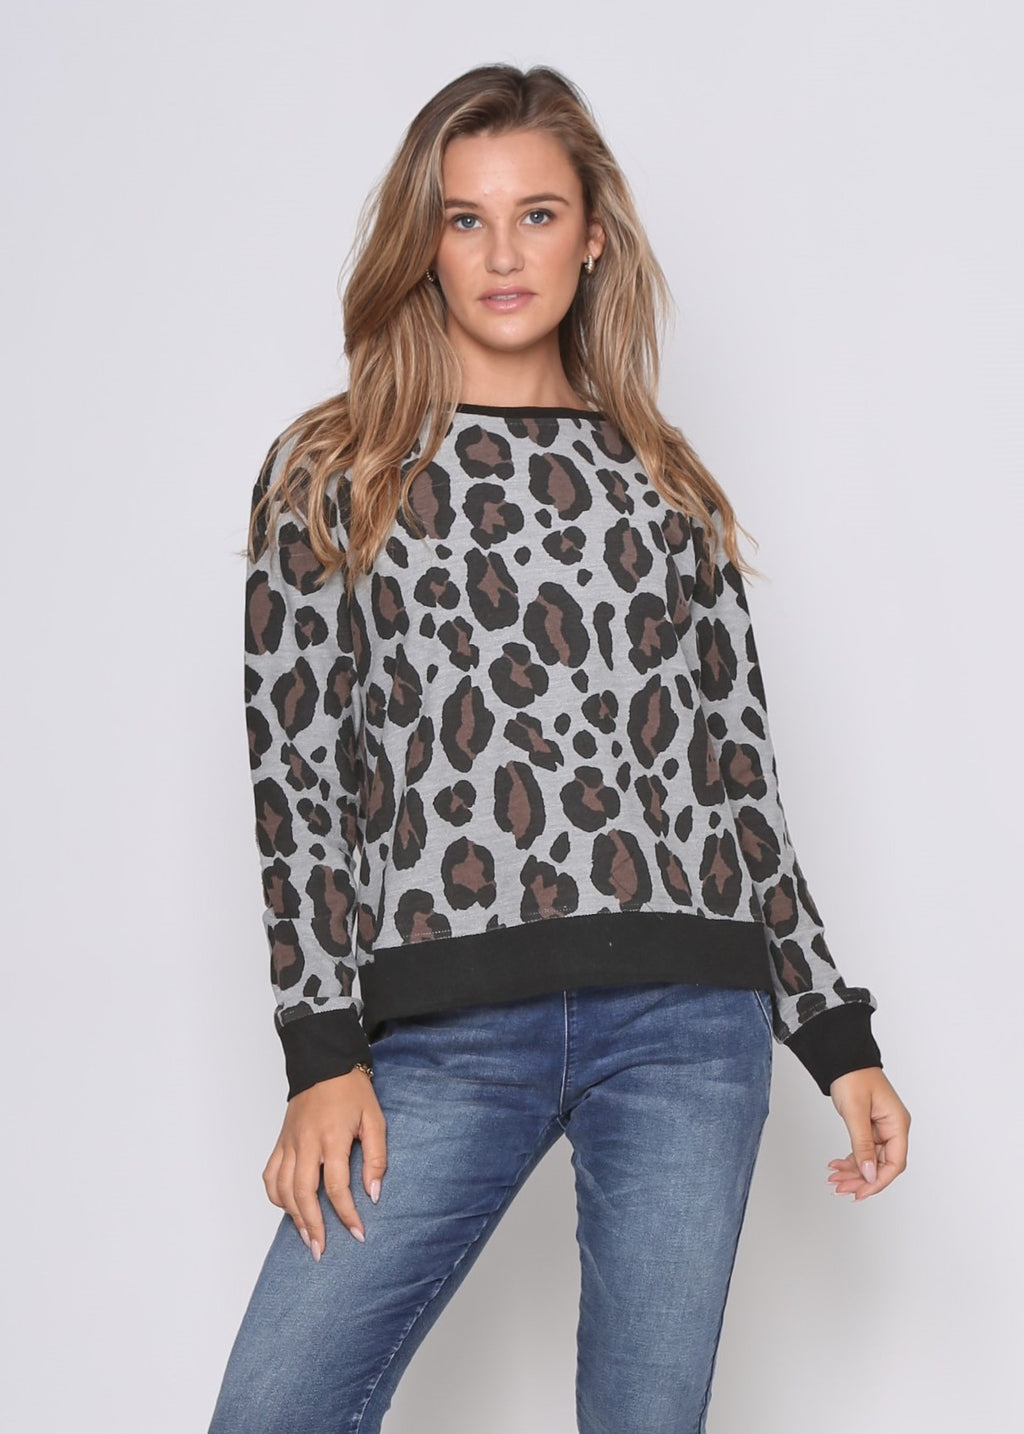 FRAZER SWEATER - GREY LEOPARD